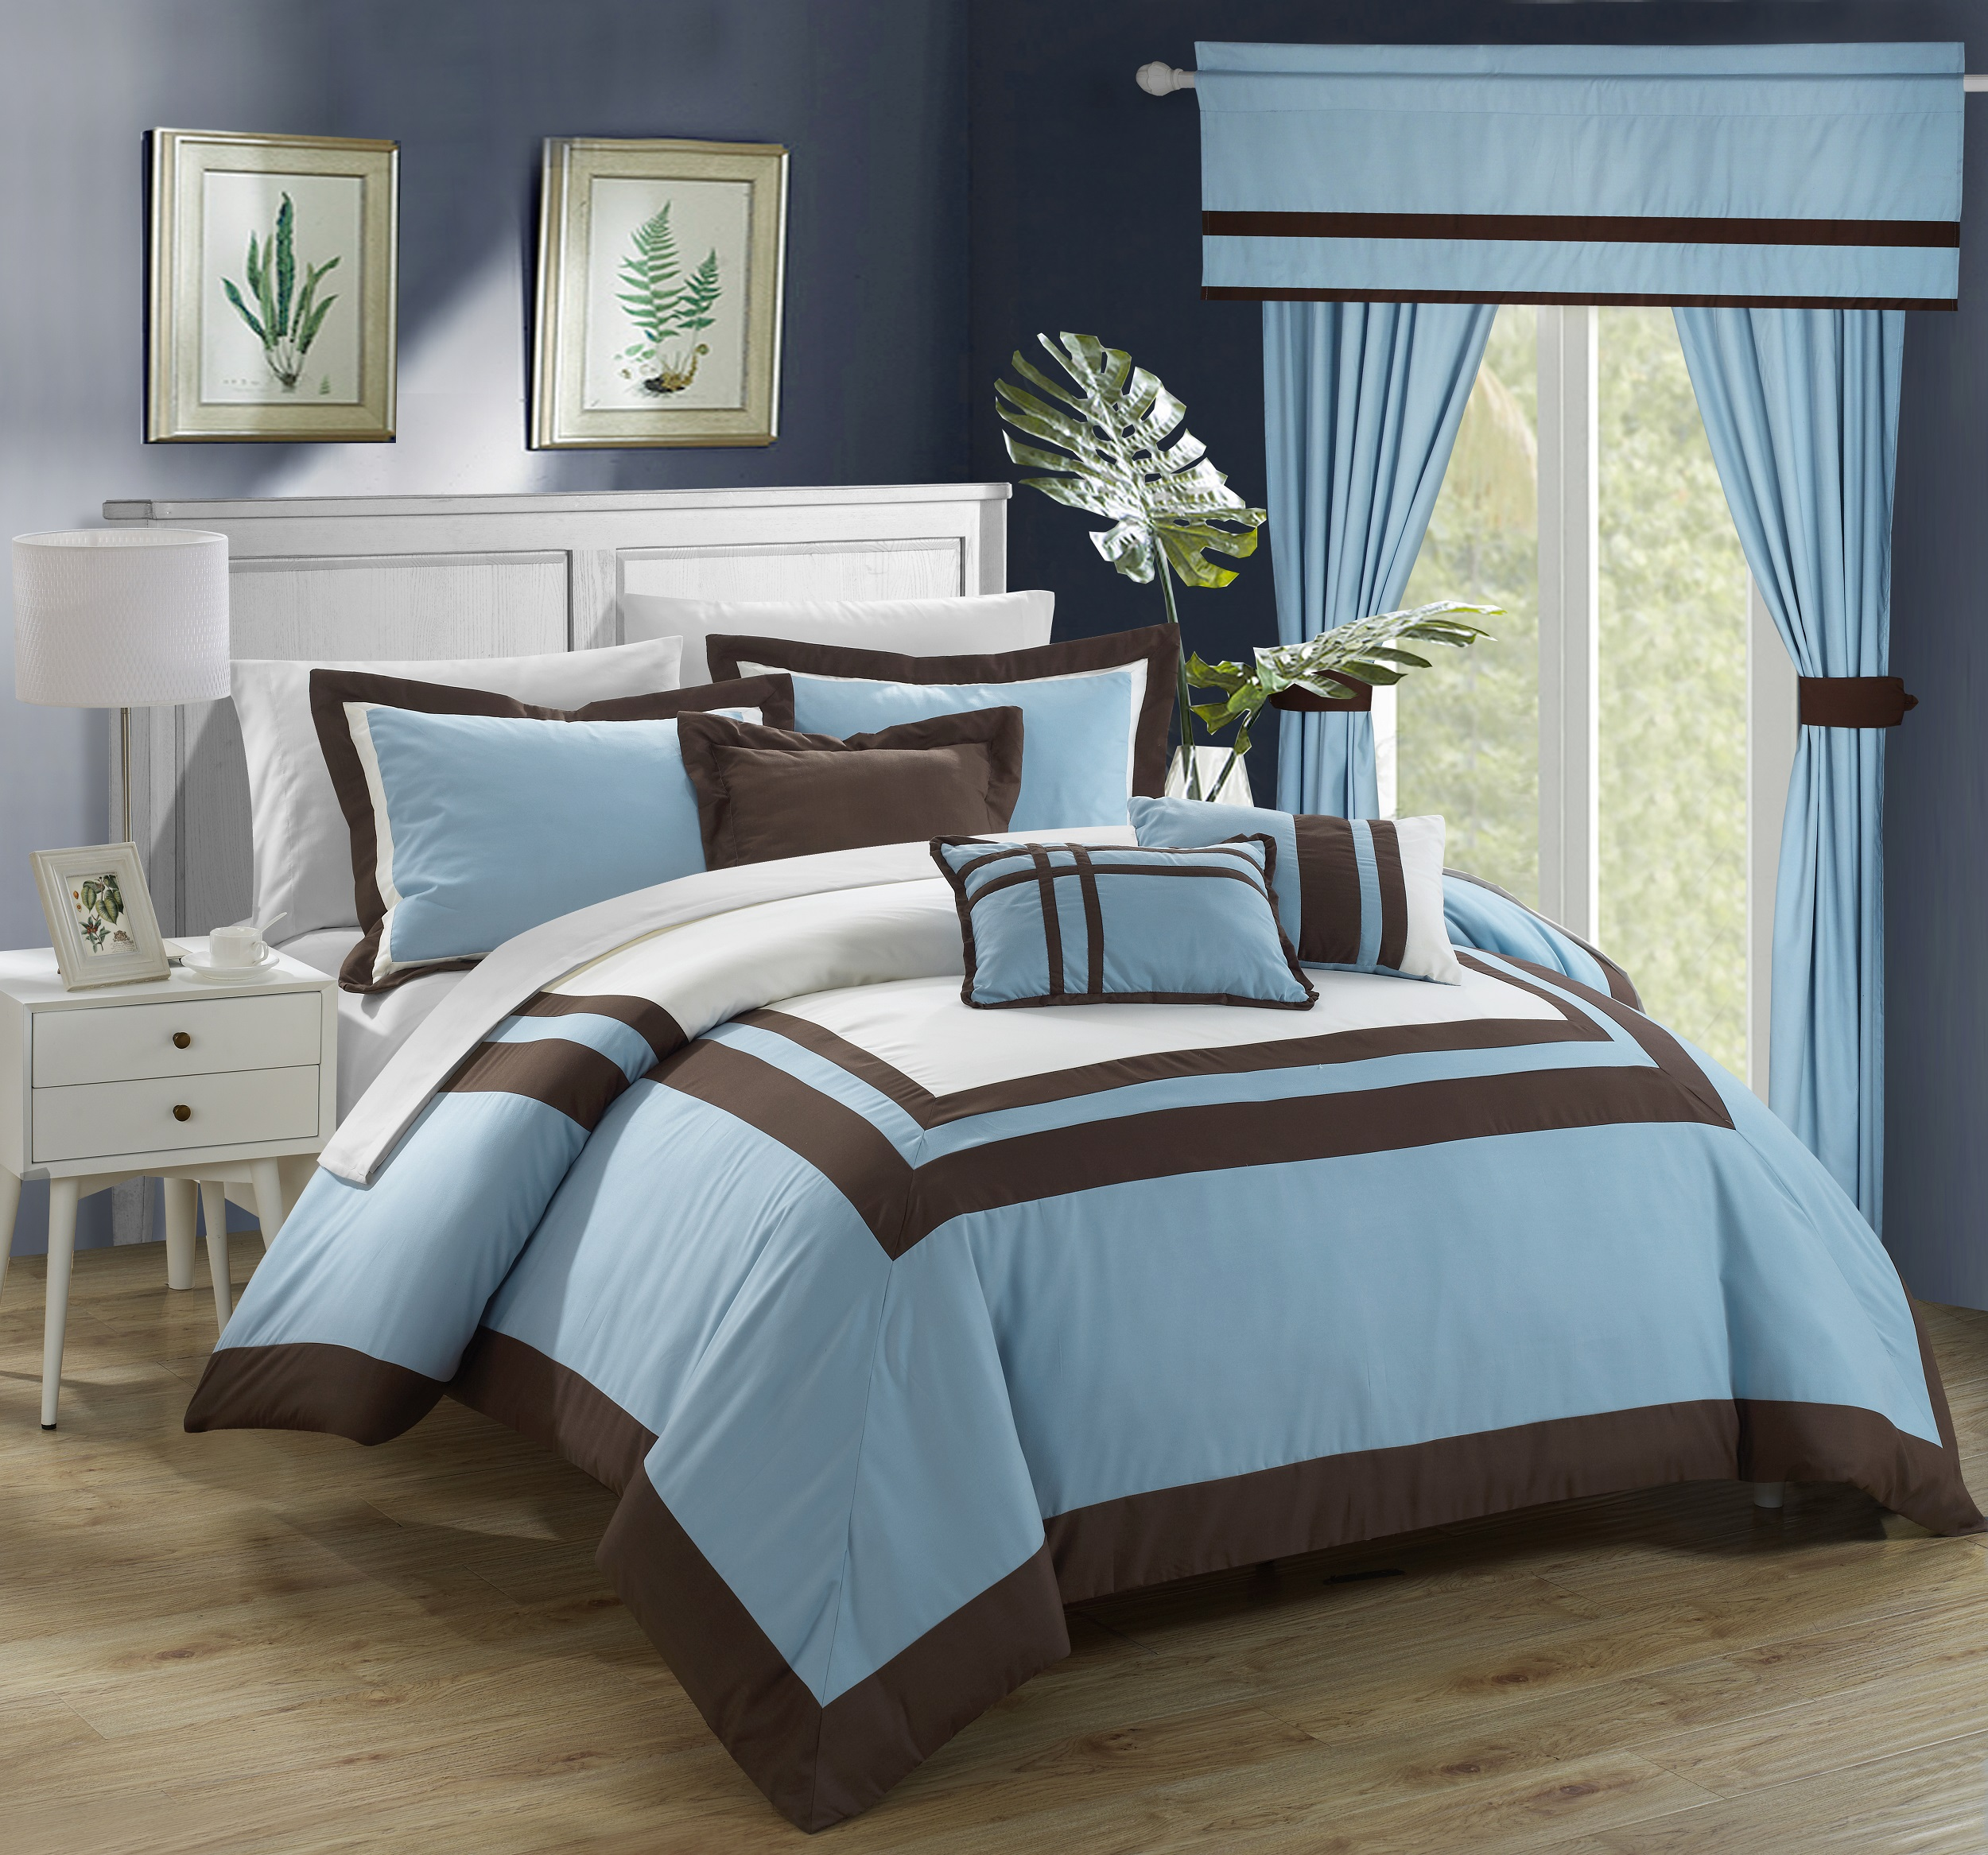 Chic Home 20-Piece Christofle-Pieced Color Blocked Complete Master Bedroom Ensemble Includes Comforter Set, sheet set and window treatments. King, Blue